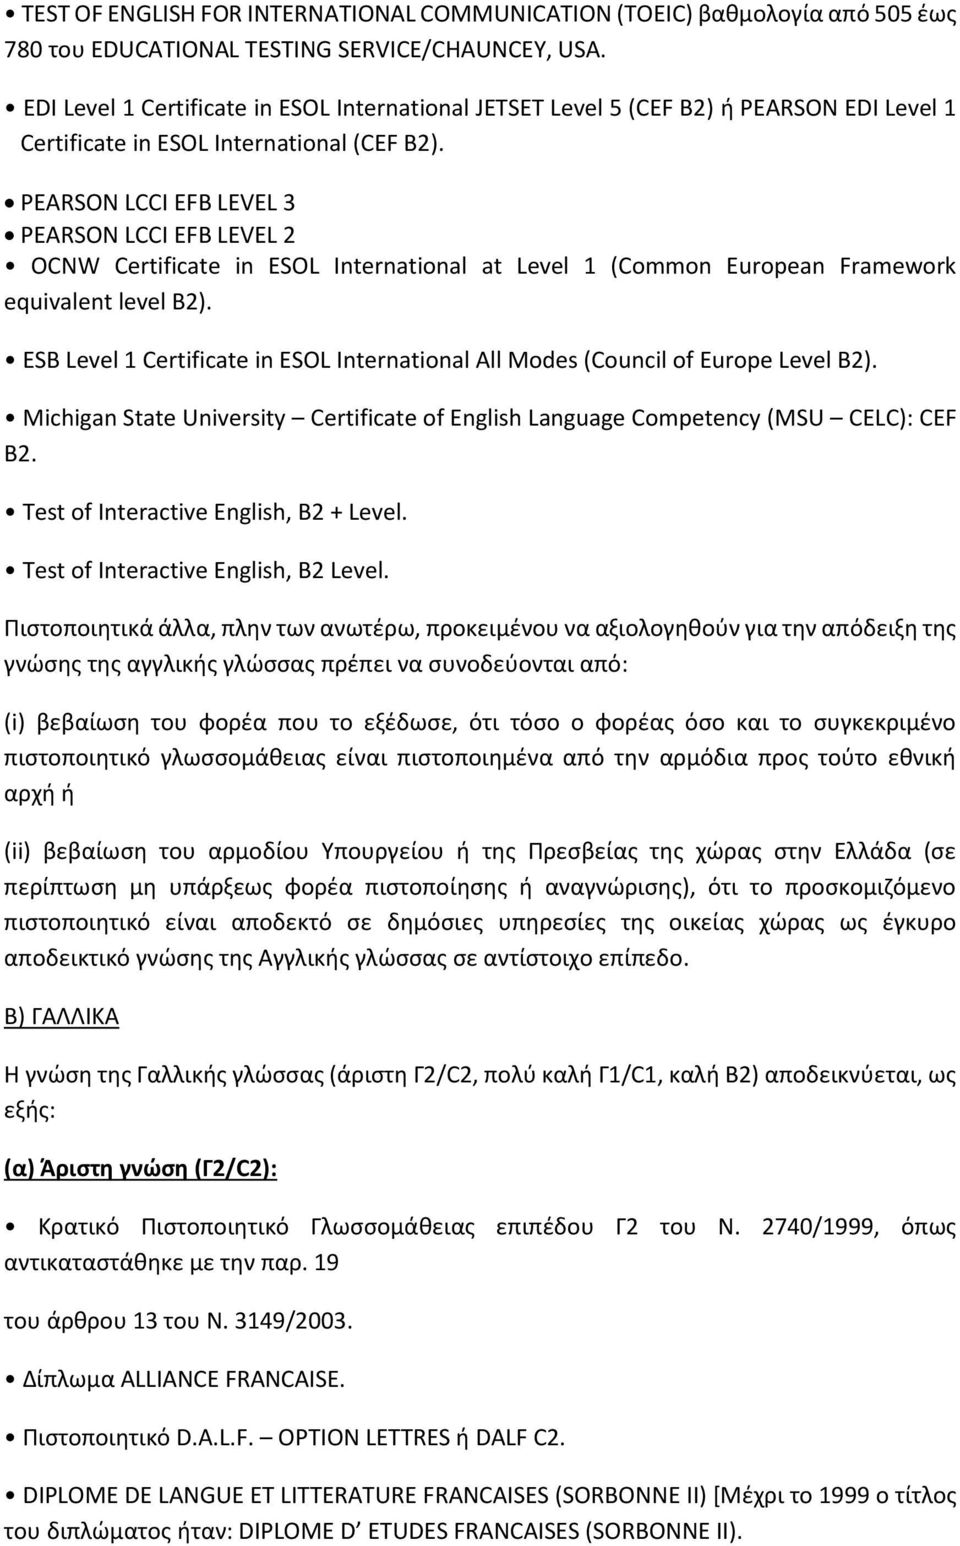 PEARSON LCCI EFB LEVEL 3 PEARSON LCCI EFB LEVEL 2 OCNW Certificate in ESOL International at Level 1 (Common European Framework equivalent level B2).